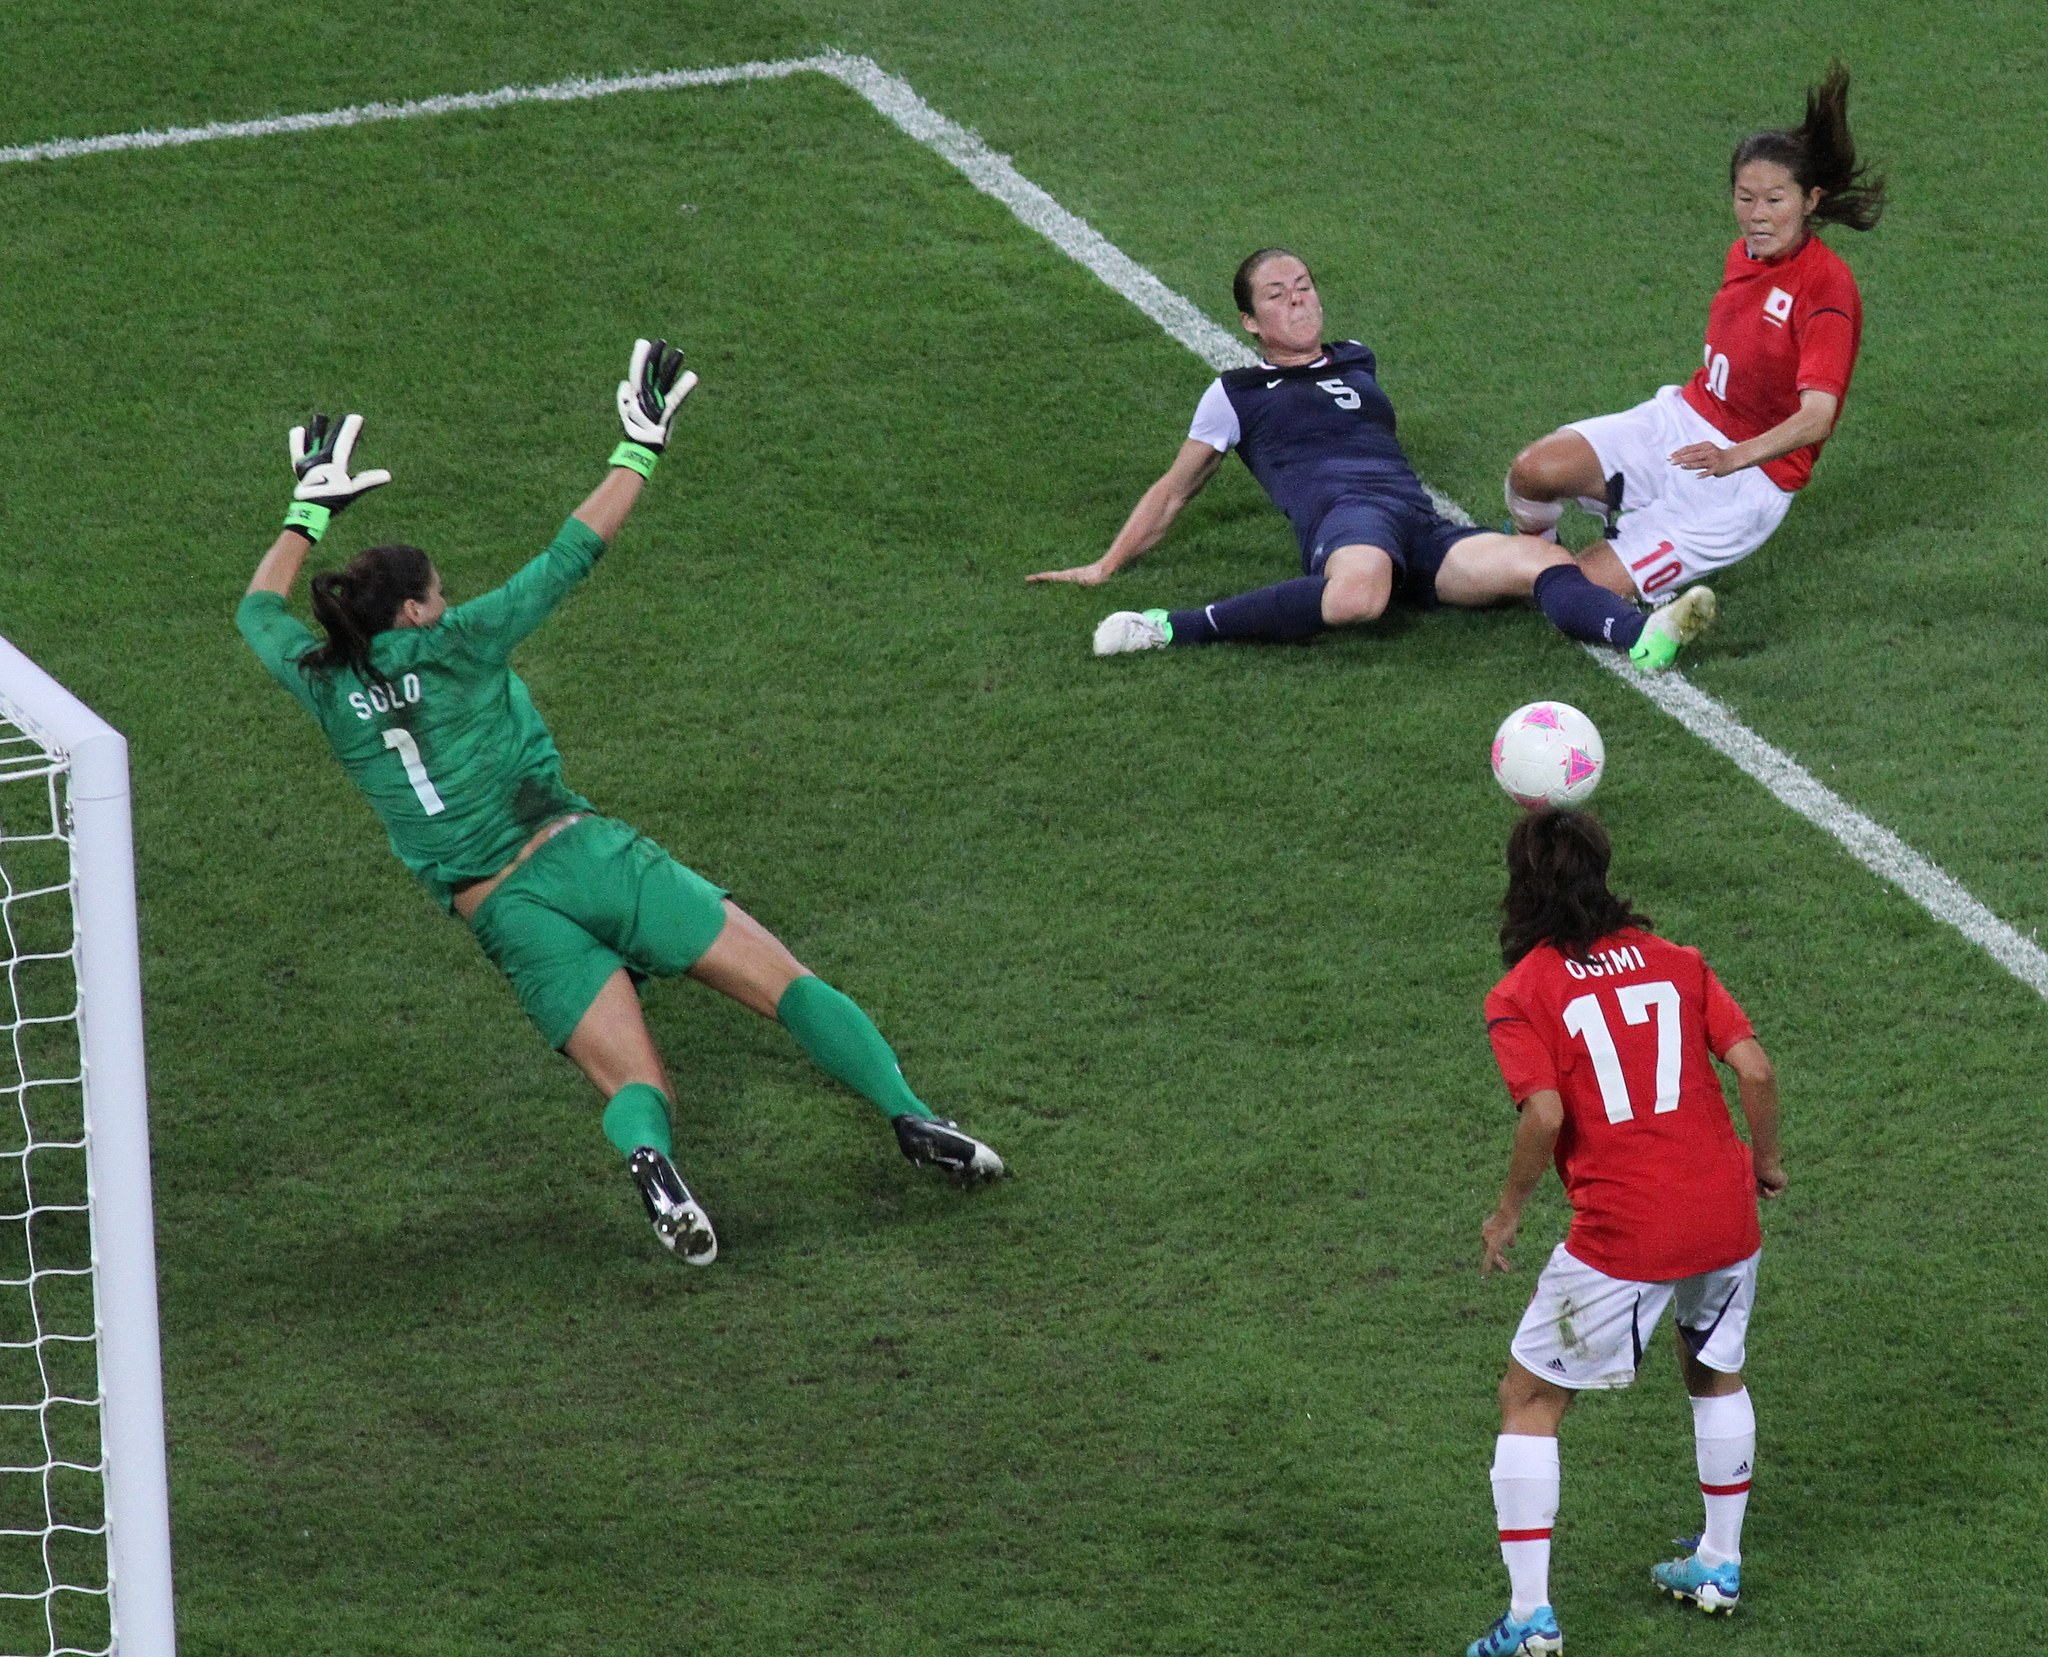 Yuki Ogimi scores a goal for Japan against the United States in the 2012 Olympic gold medal match for women's soccer.